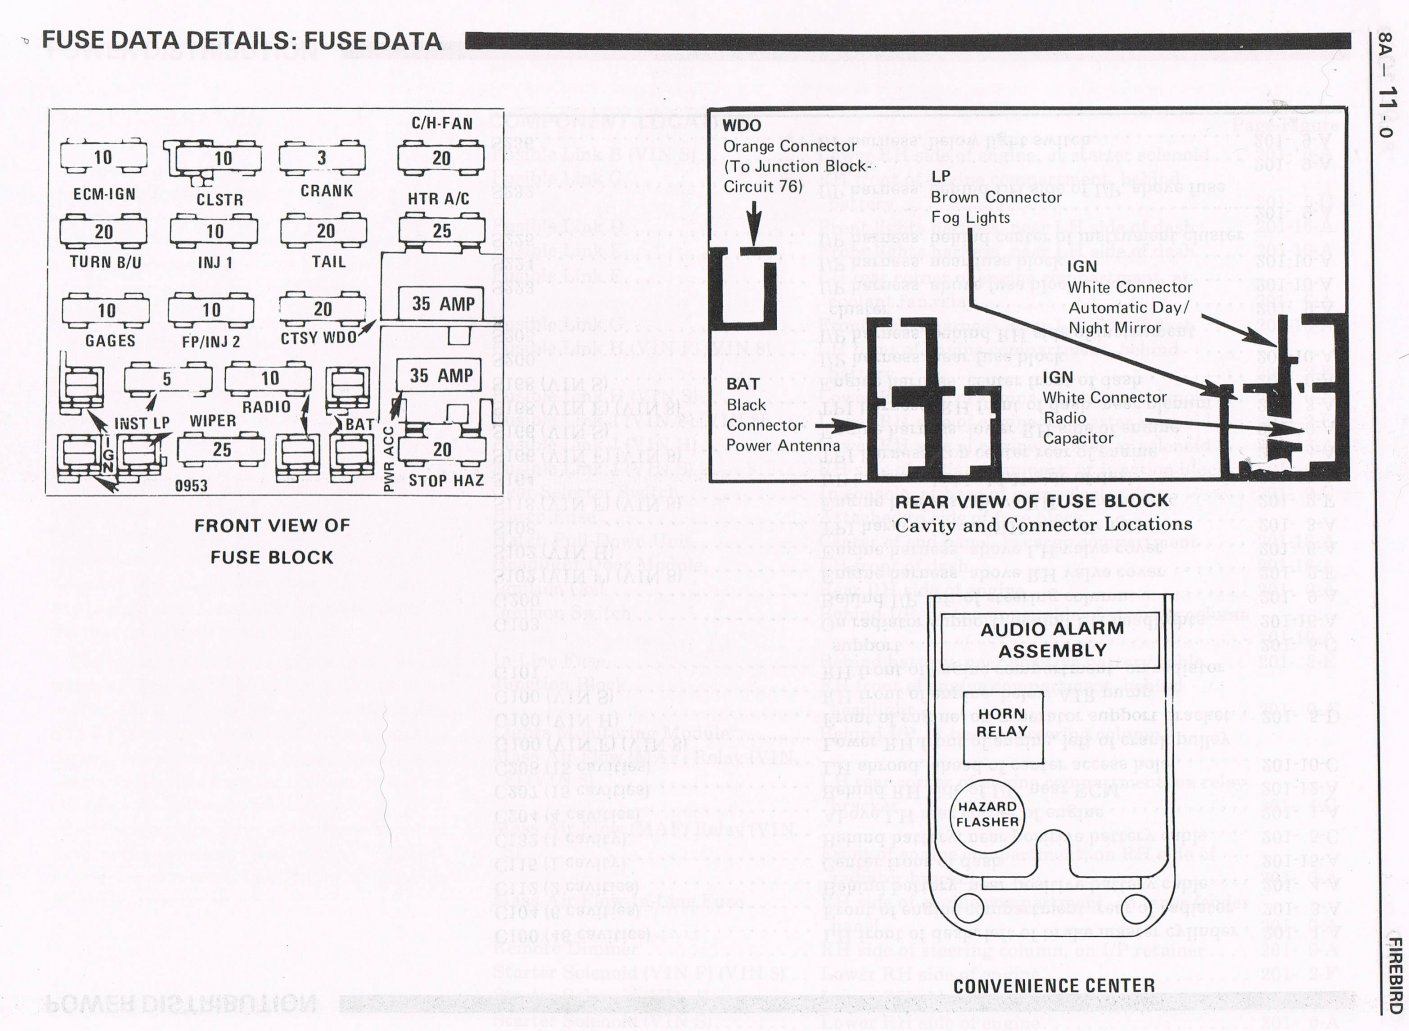 1986 Camaro Fuse Panel Diagram Real Wiring 86 Box Firebird Trans Am Get Free 1998 Ford